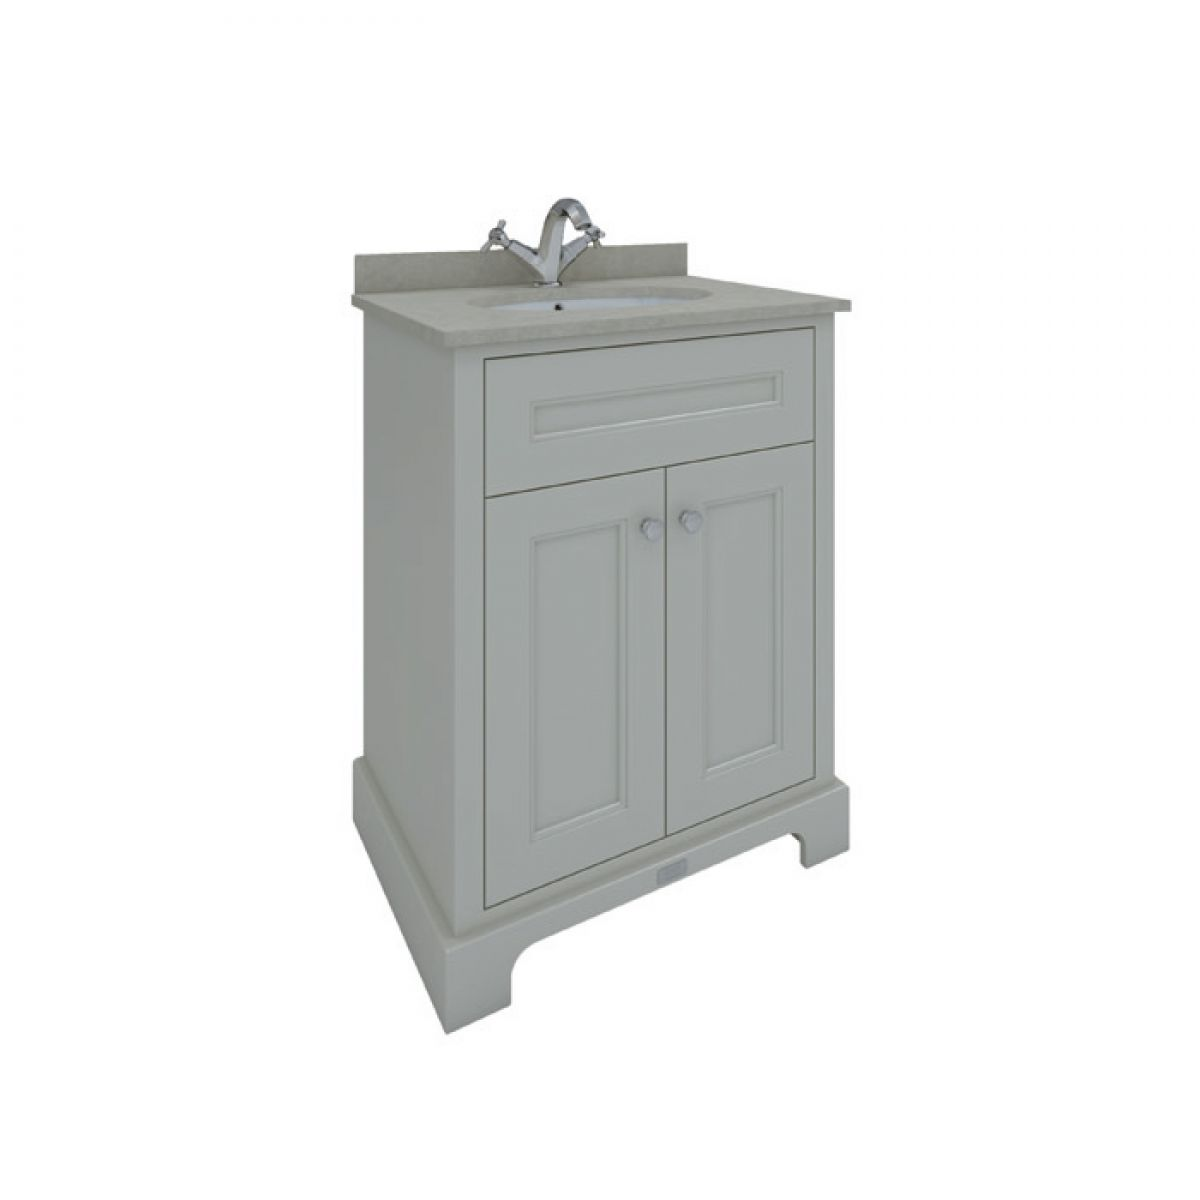 RAK Washington Greige Vanity Unit with Grey Countertop 600mm